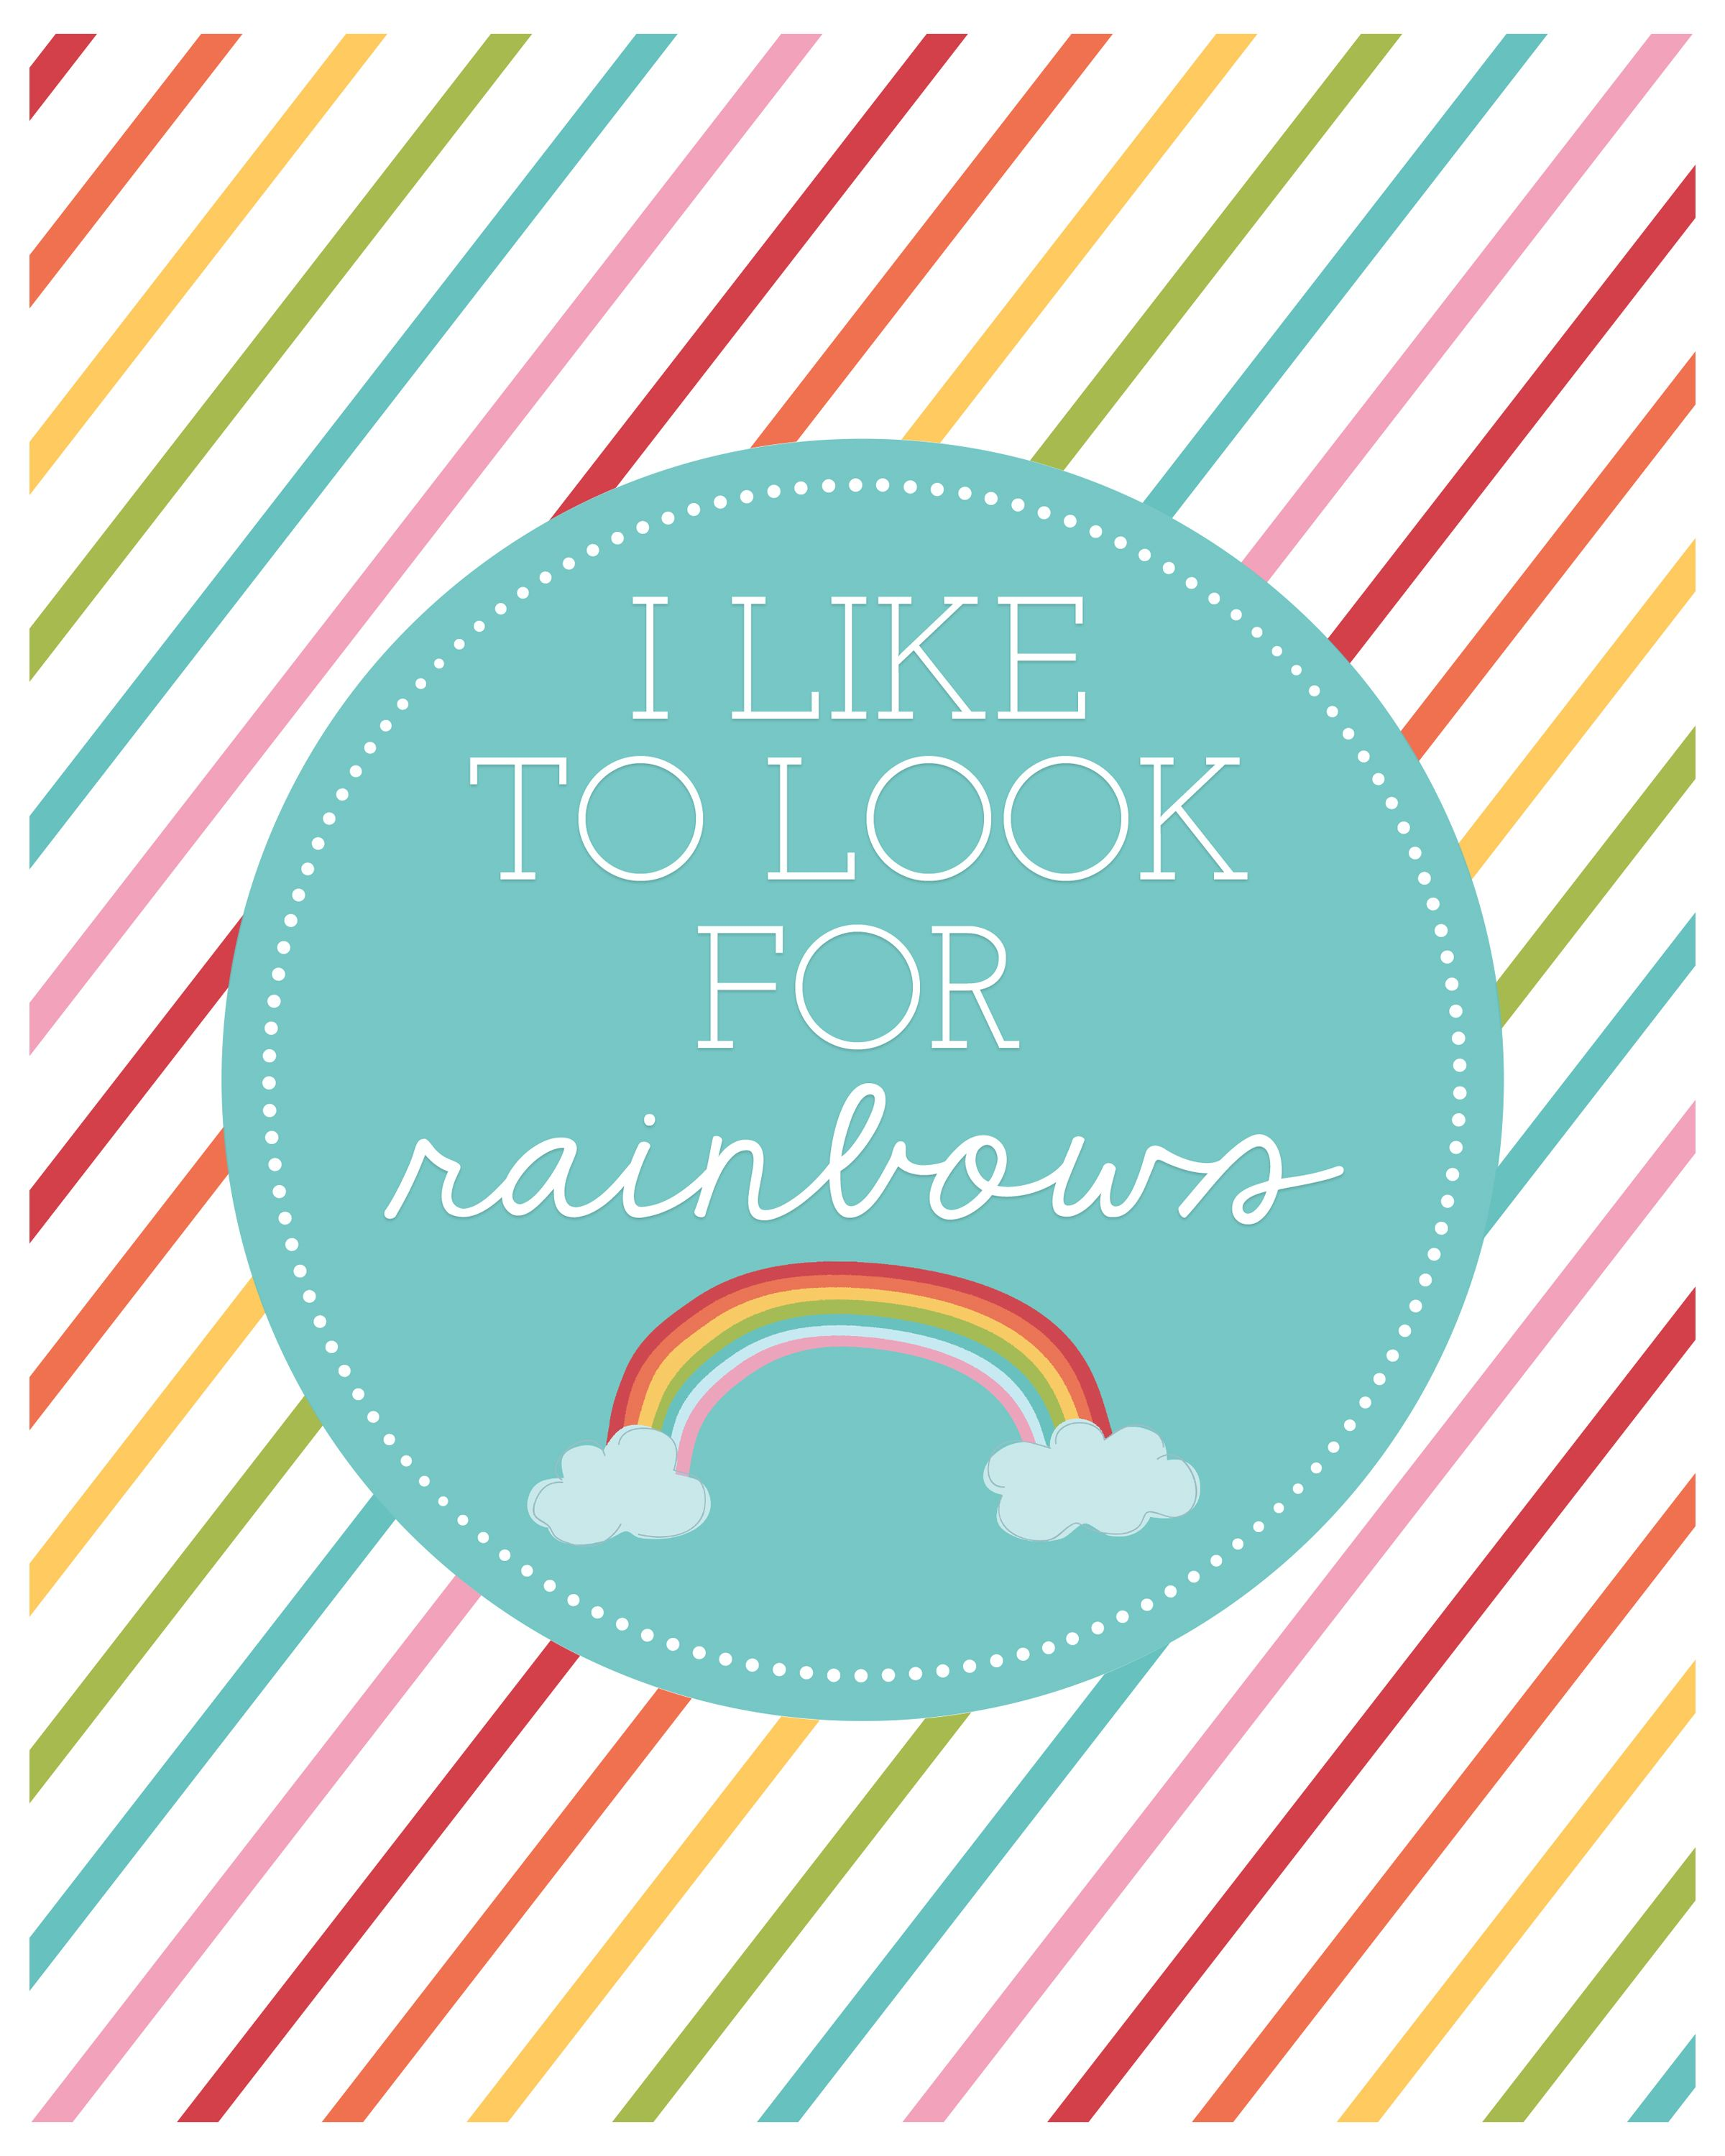 I-Like-to-Look-for-Rainbows-LDS-Baptism-Print.jpg (2400×3000) | LDS ...